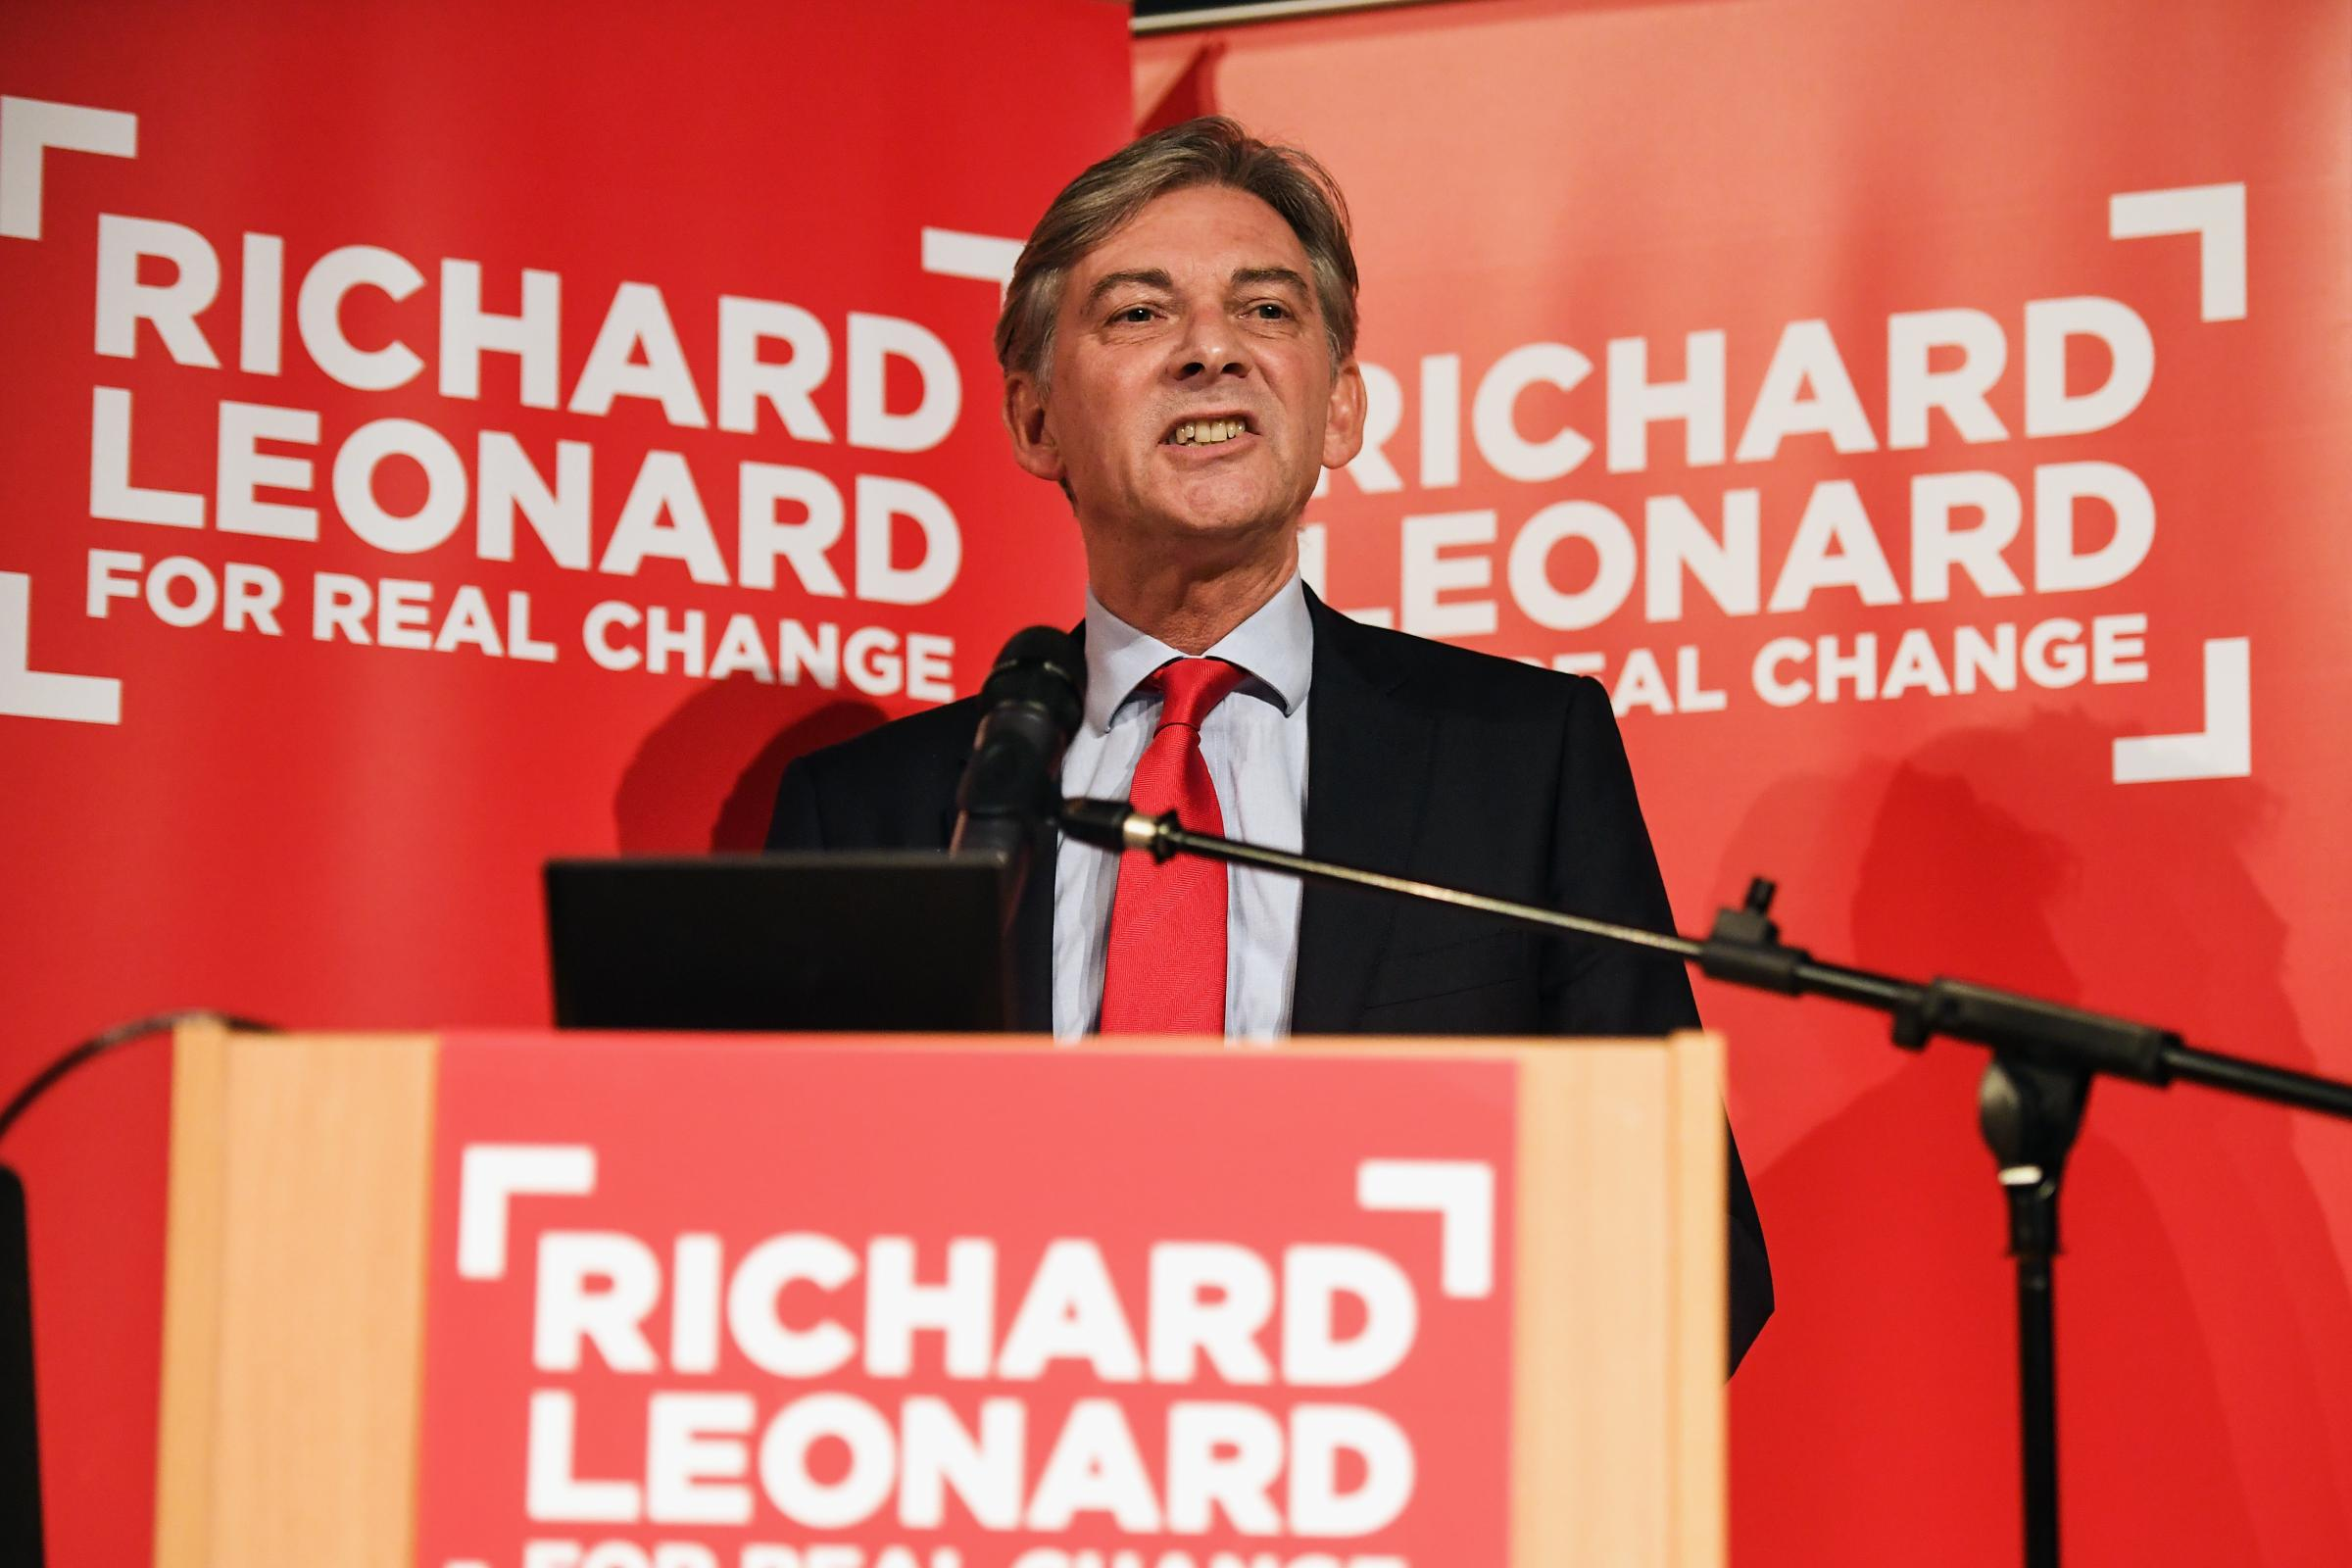 Scottish Labour leadership candidate Richard Leonard's statement was described as 'foolish'